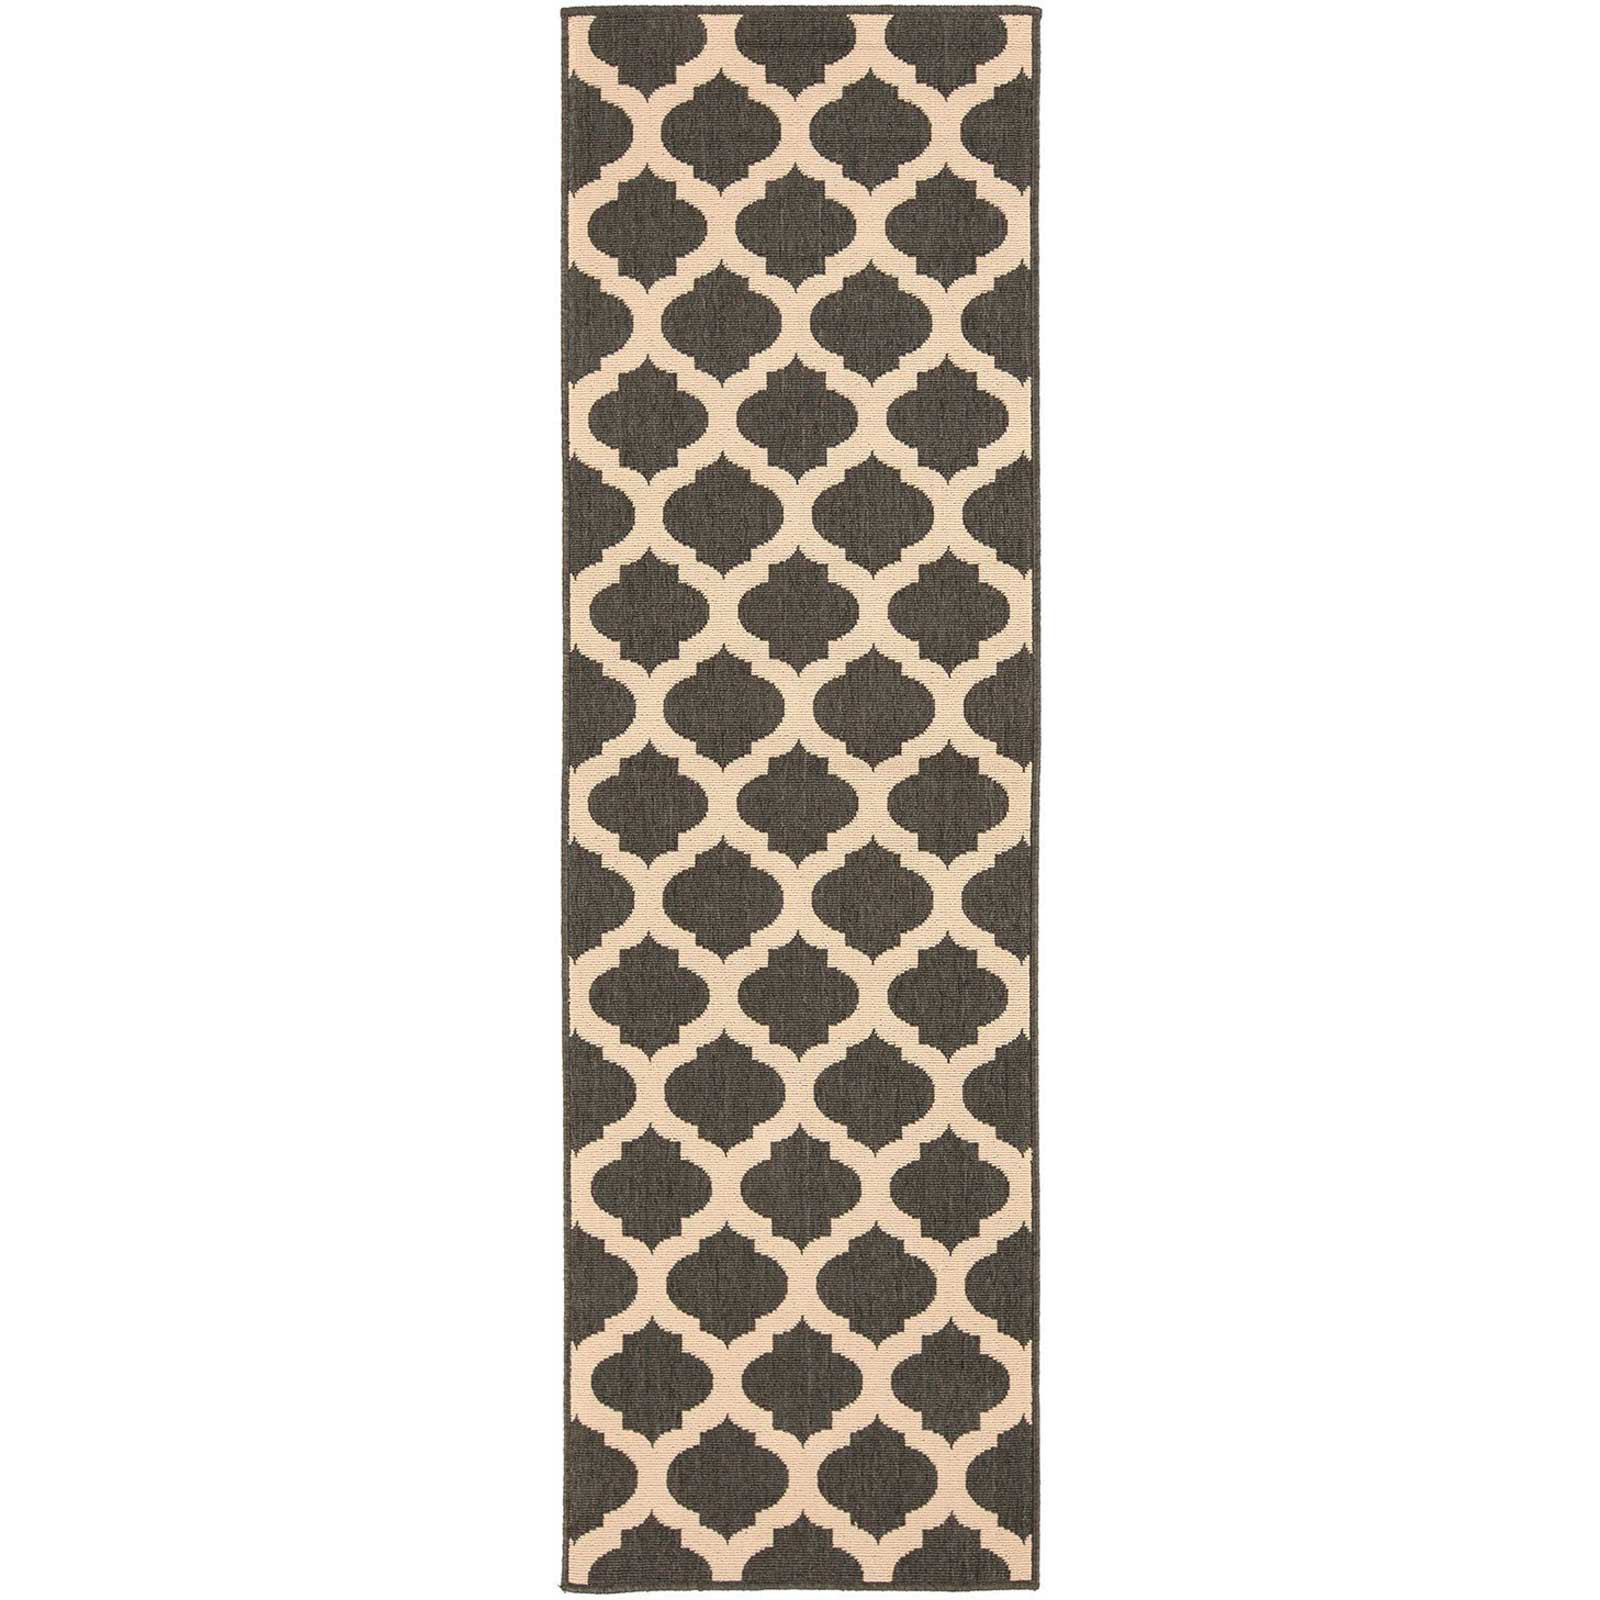 Alfresco Lattice Black/Beige Runner Rug